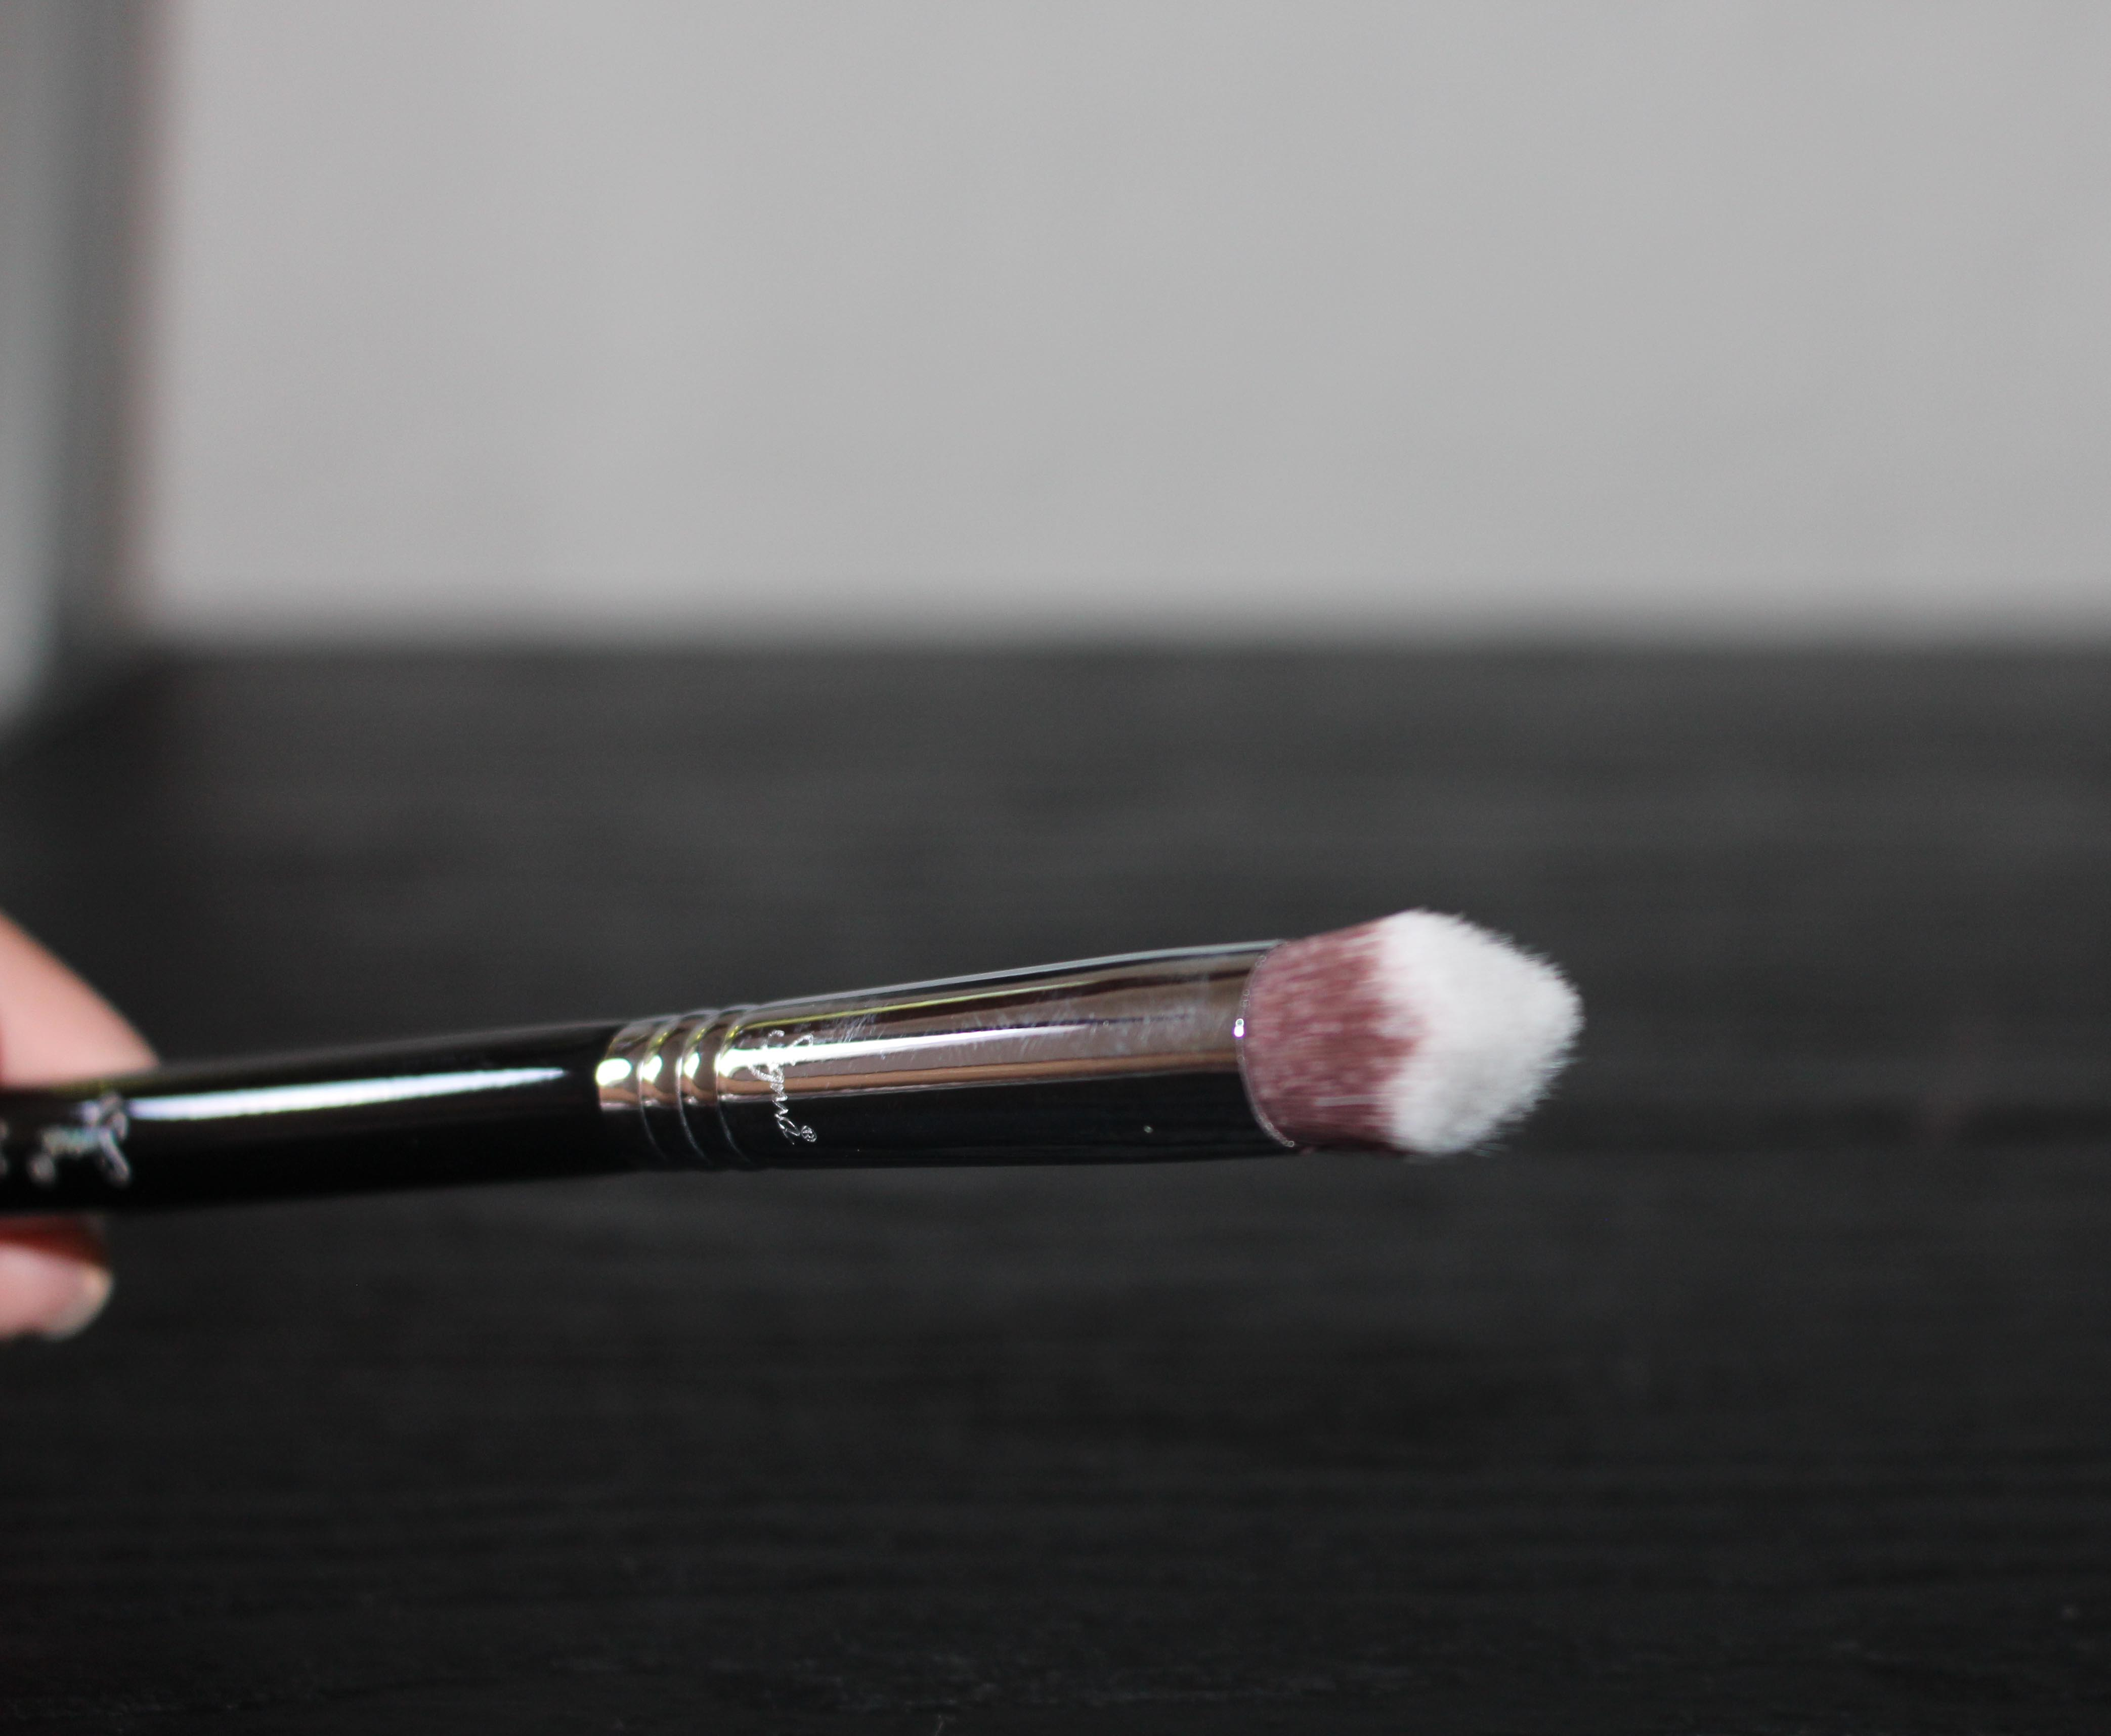 The 3DHD™ Precision brush has the small wedge, ridge which can be seen here.